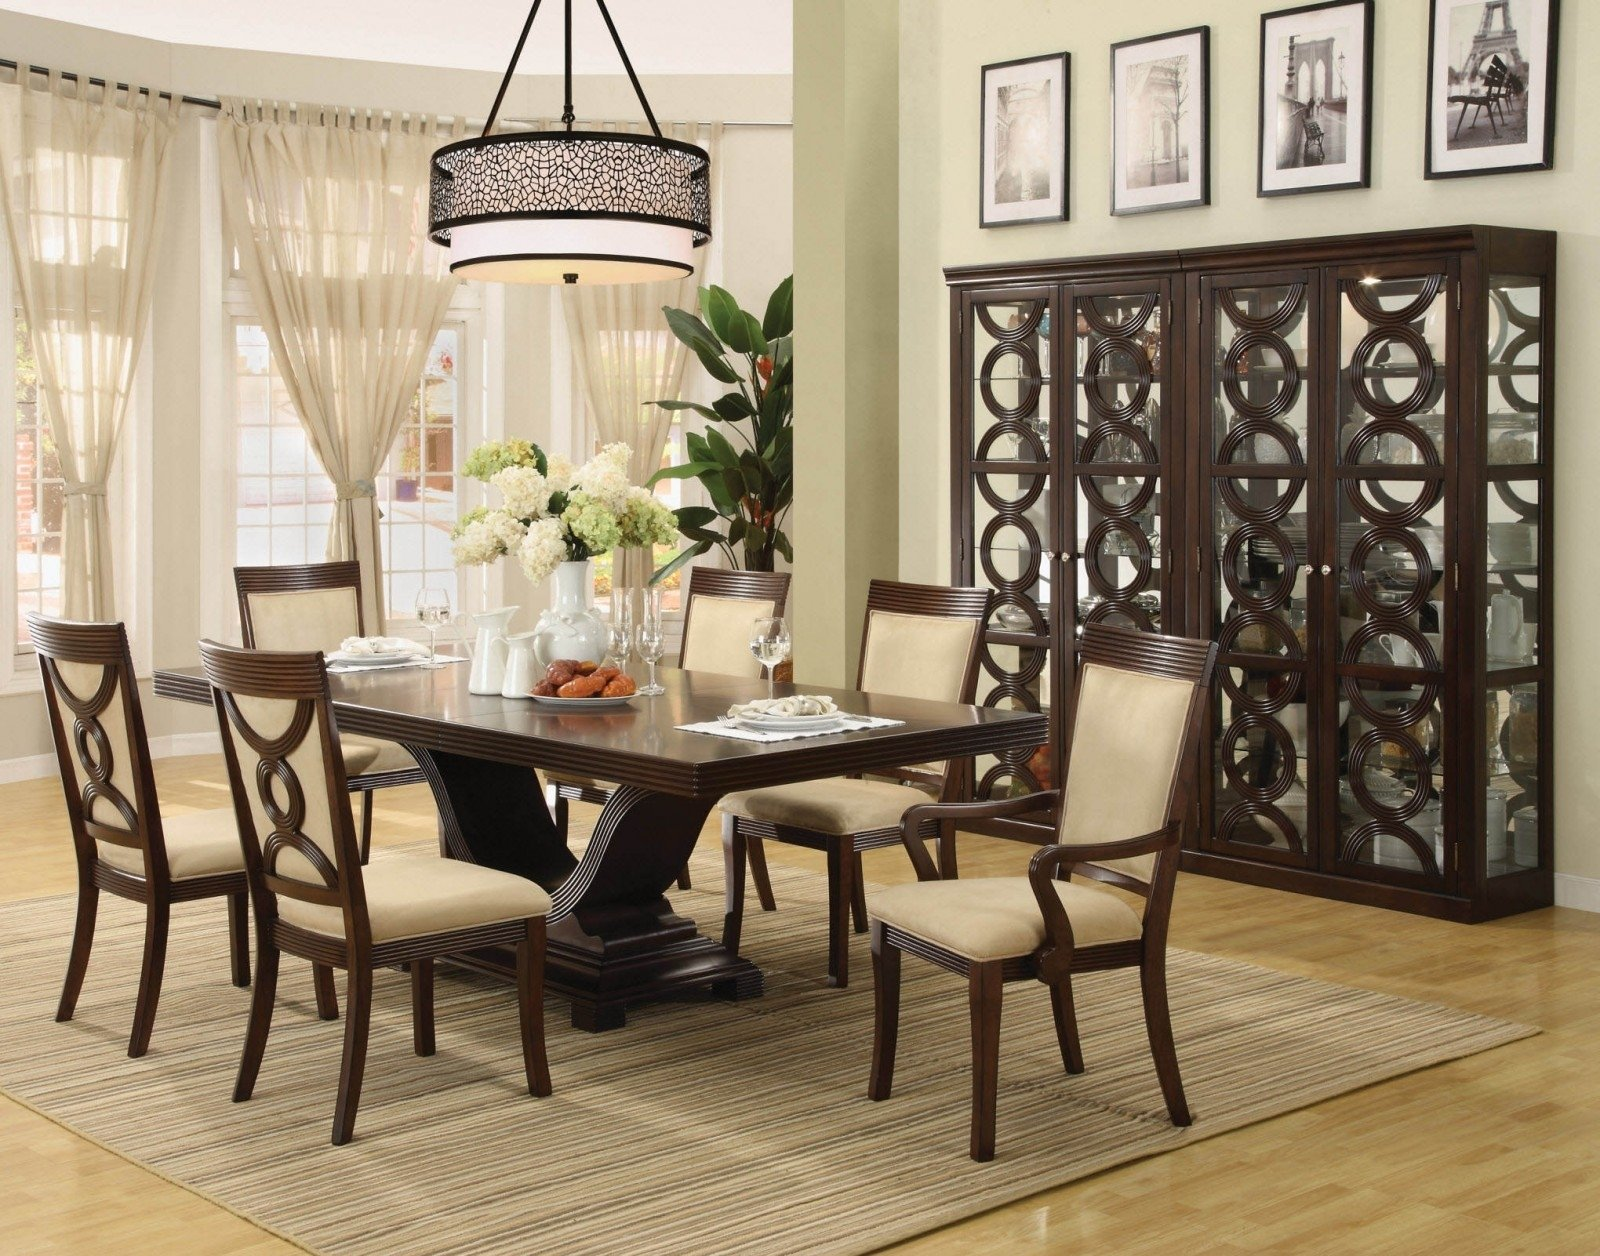 10 Pretty Dining Room Table Centerpieces Ideas modern dining room table centerpieces ideas pseudonumerology 2020